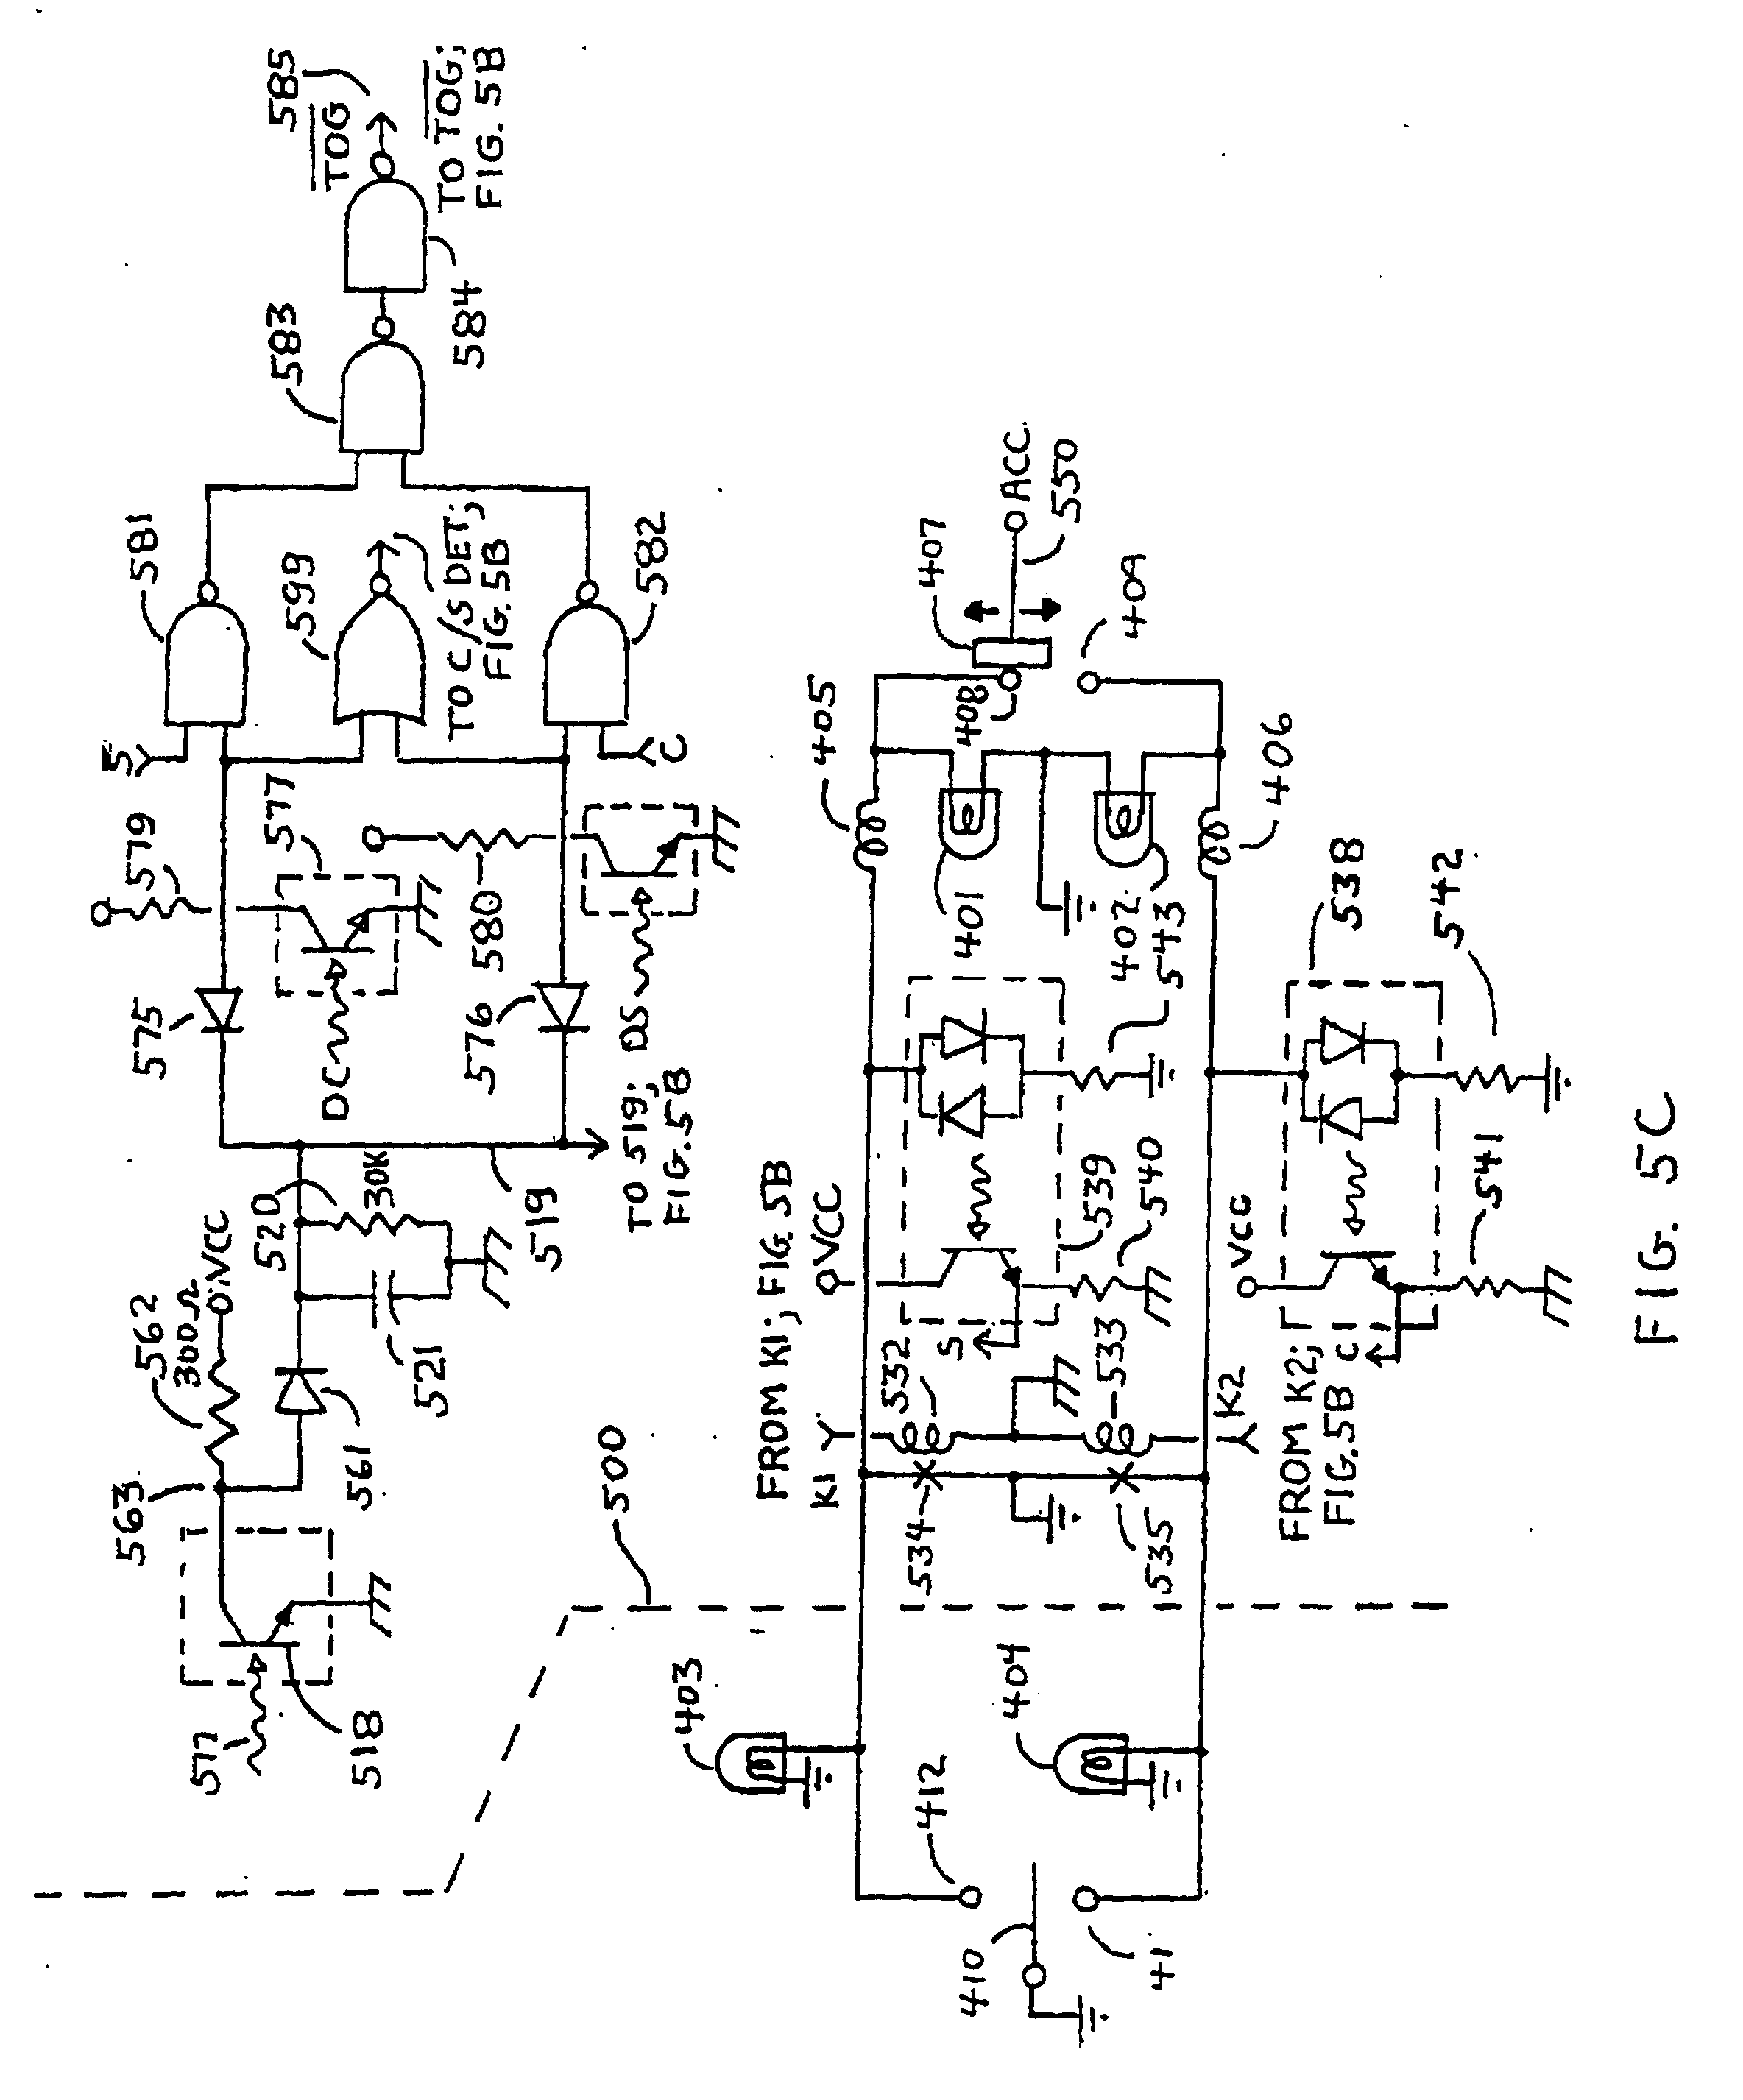 Relay And Switch Machine Control Wiring Diagram For Trackside Lights additionally Toyota Sequoia Parts Diagram further Radio Wiring Connector For 2008 Silverado also  on trailblazer backup light wiring diagram